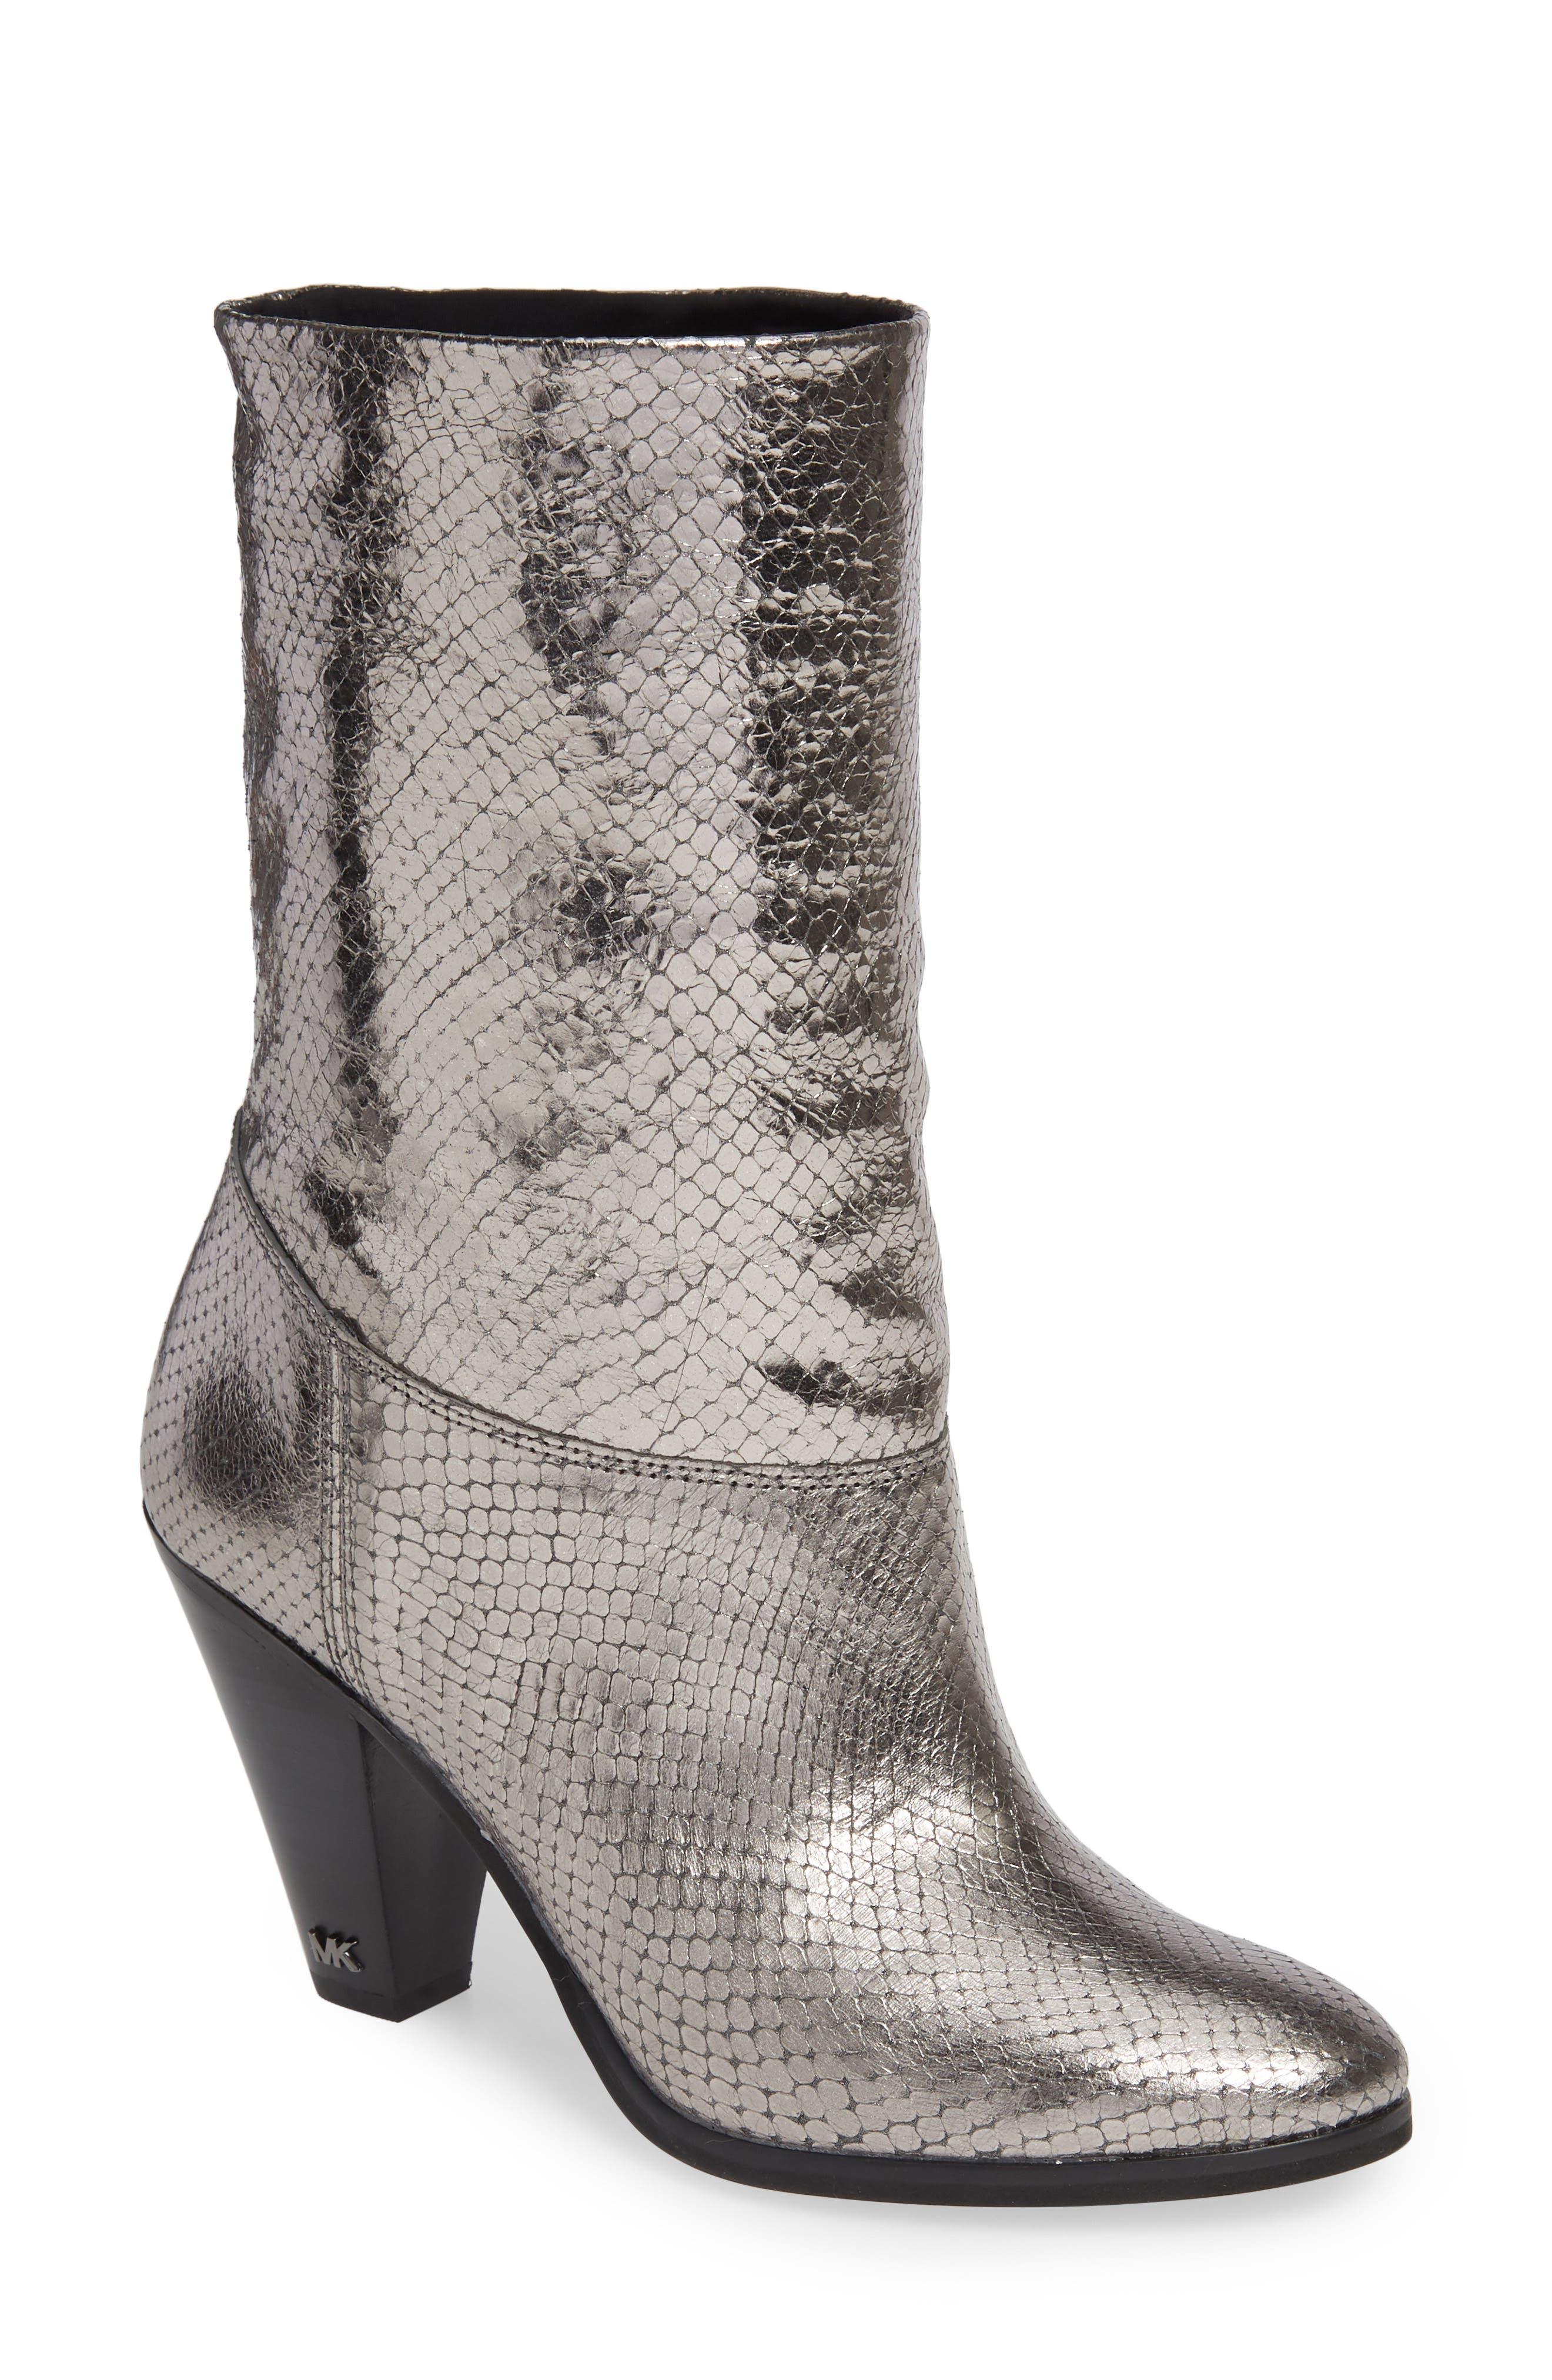 Divia Diamond Metallic Leather Mid-Calf Boots in Anthracite